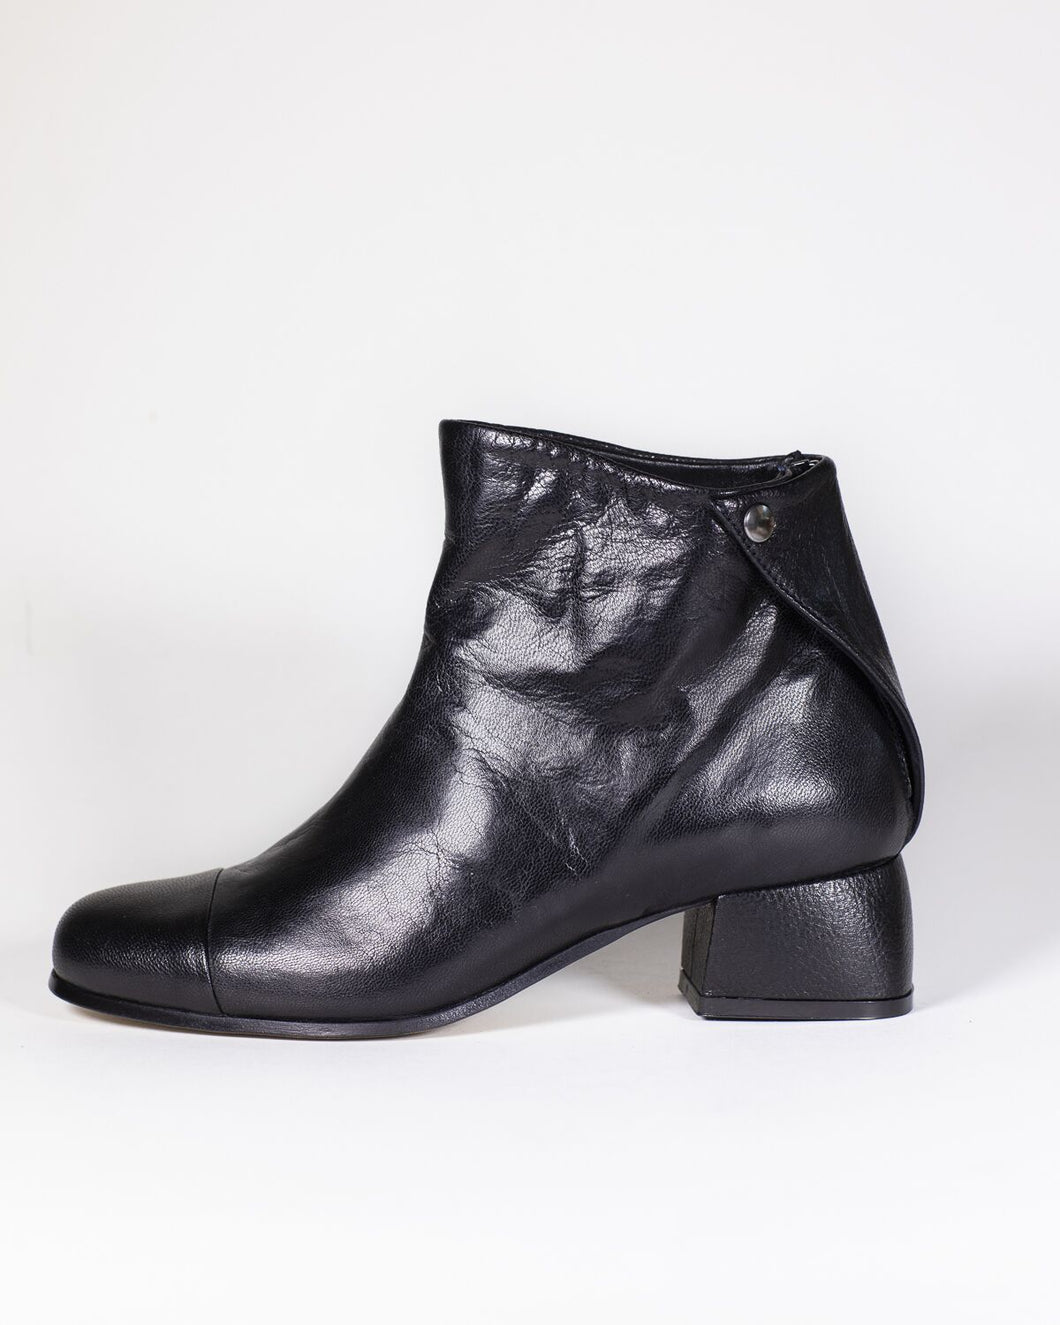 Beau Coops Beau 6 Black Leather